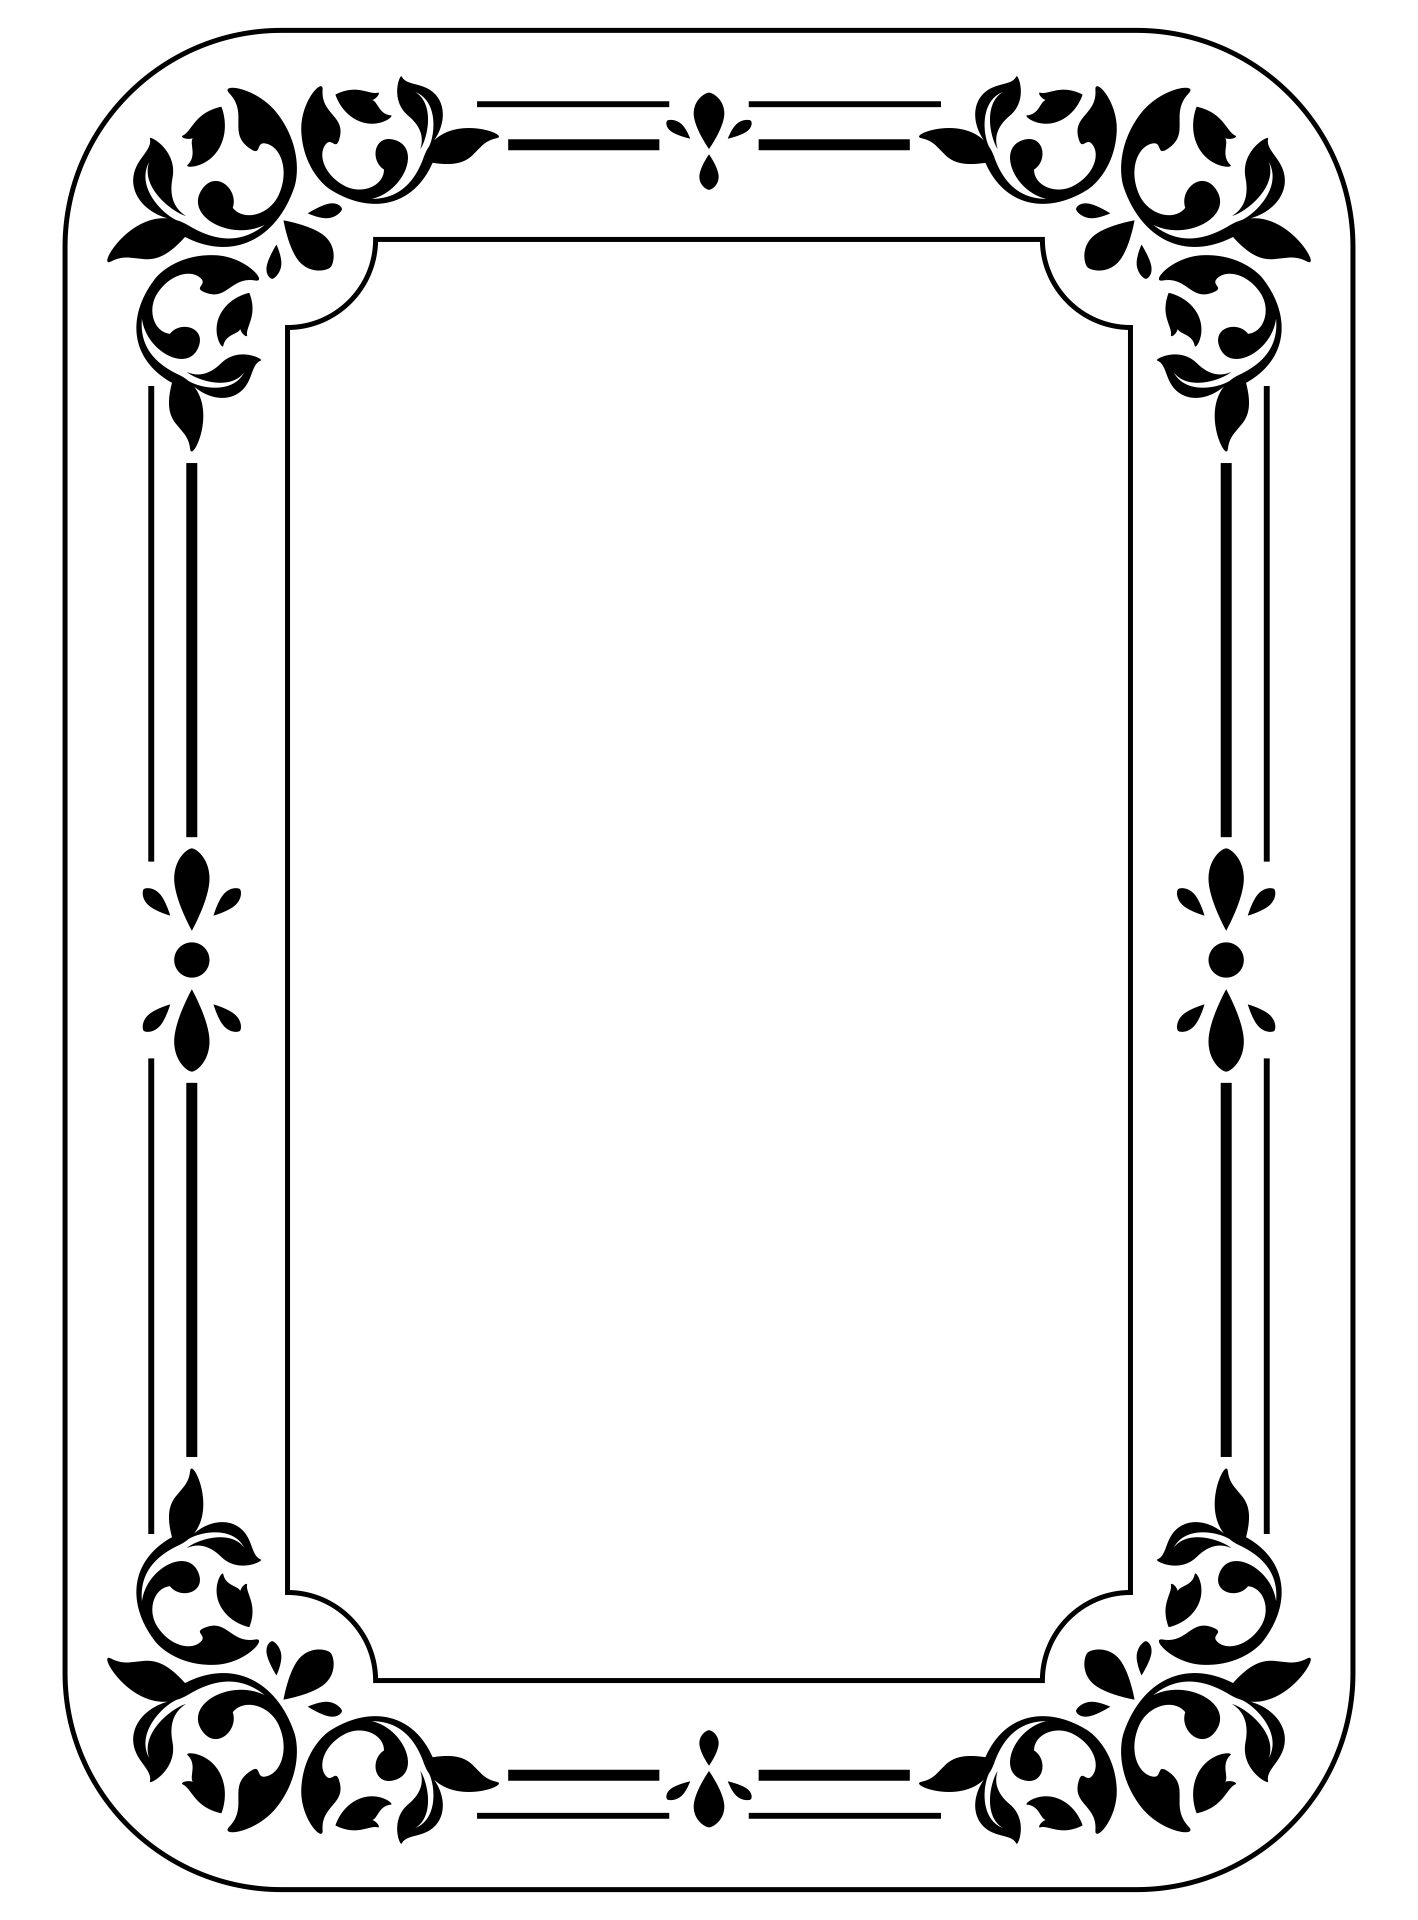 8 Best Images of Printable Coloring Page Picture Frame ...